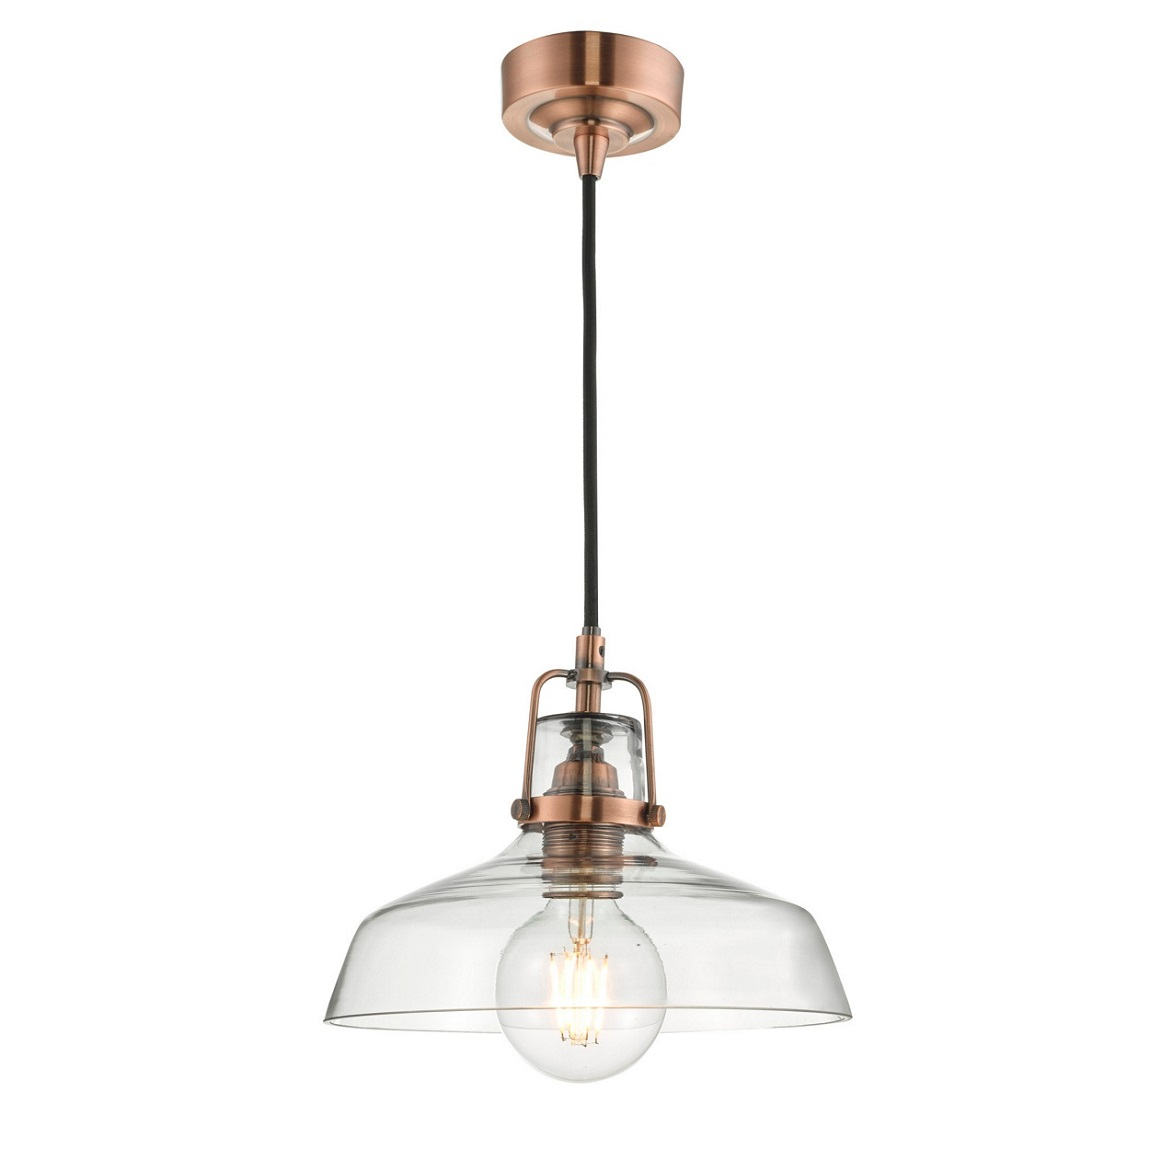 Debenhams Home Collection 'Miles' Pendant Ceiling Light